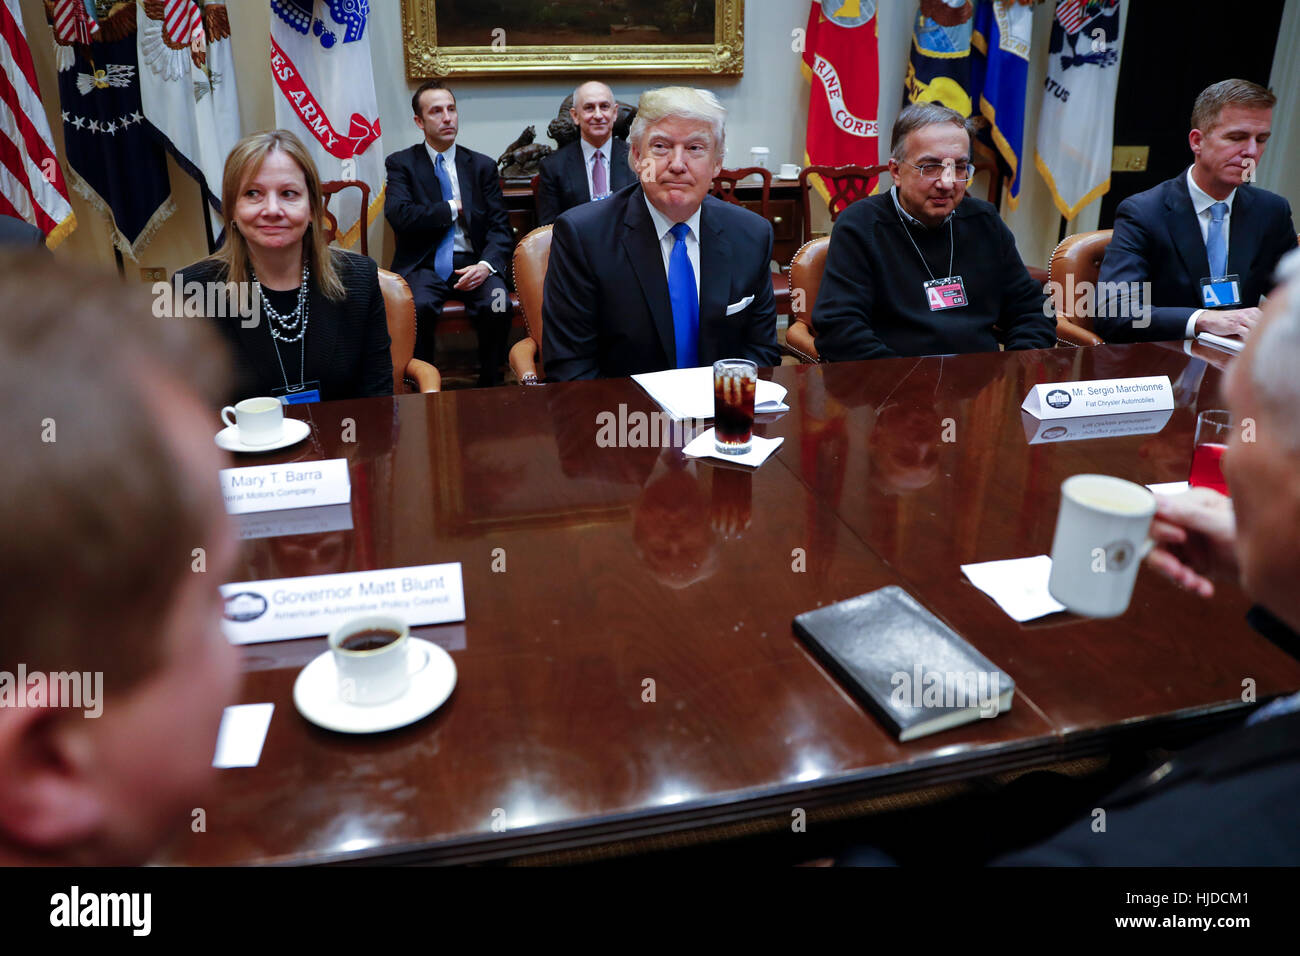 Washington, USA. 24th Jan, 2017. US President Donald Trump (C), with CEO of General Motors Mary Barra (L), CEO of Stock Photo